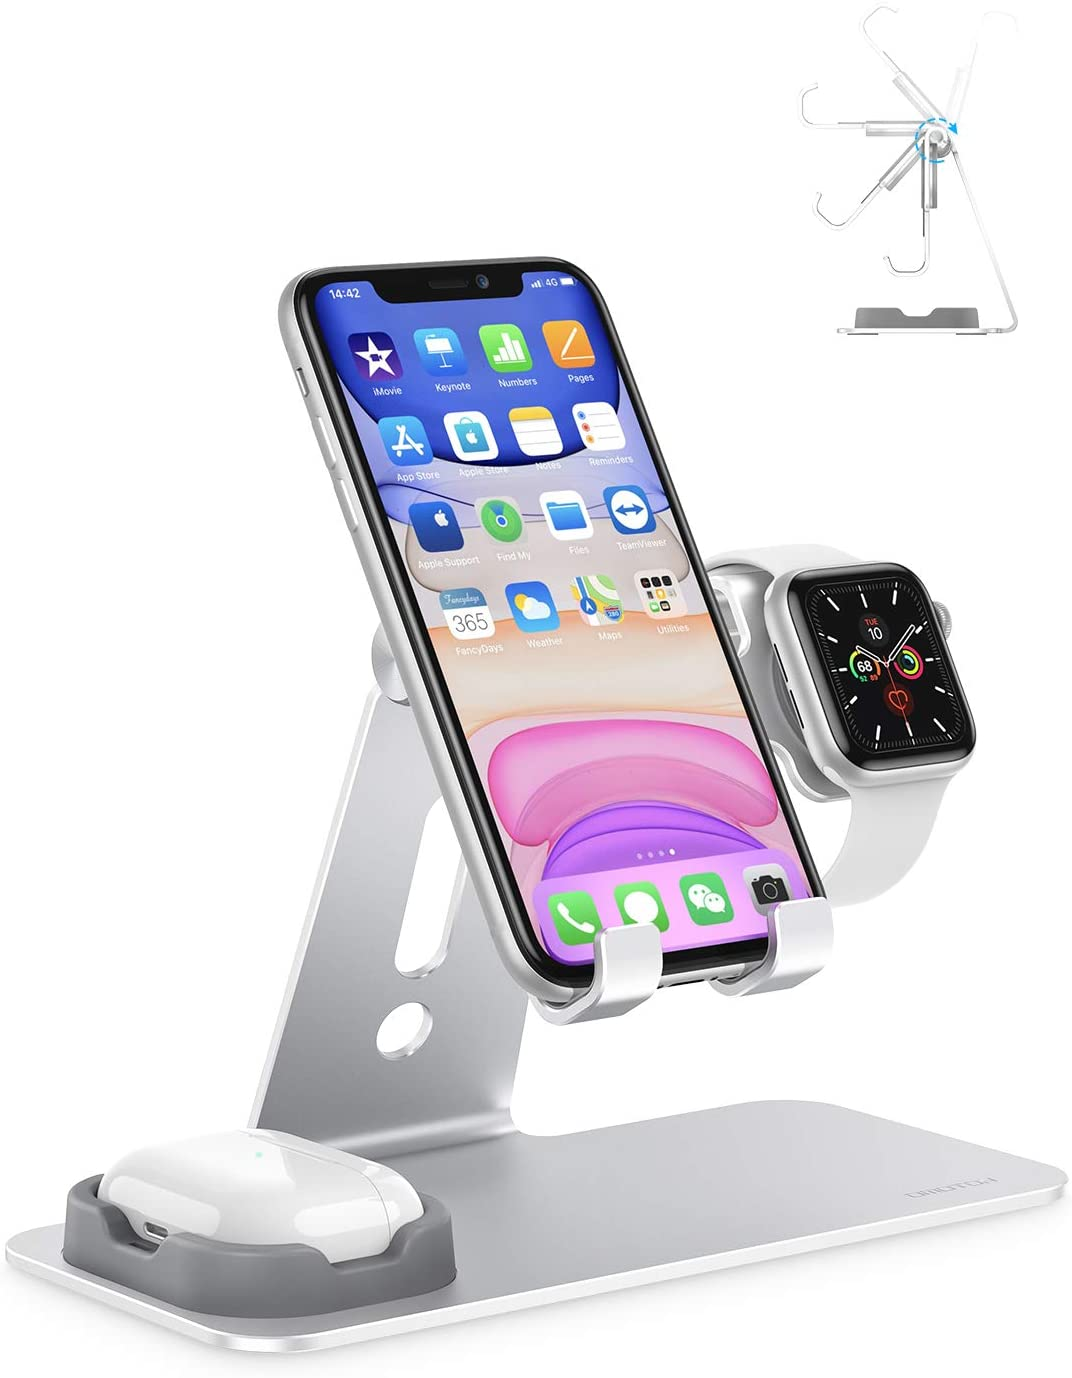 OMOTON Adjustable Apple Watch Stand, Triunity Charging Dock For iWatch, AirPod and iPhone 11/XR/XS/6/7/8 Plus/12 Pro Max, Original Apple Watch Magnetic Charging Cable Required, Silver